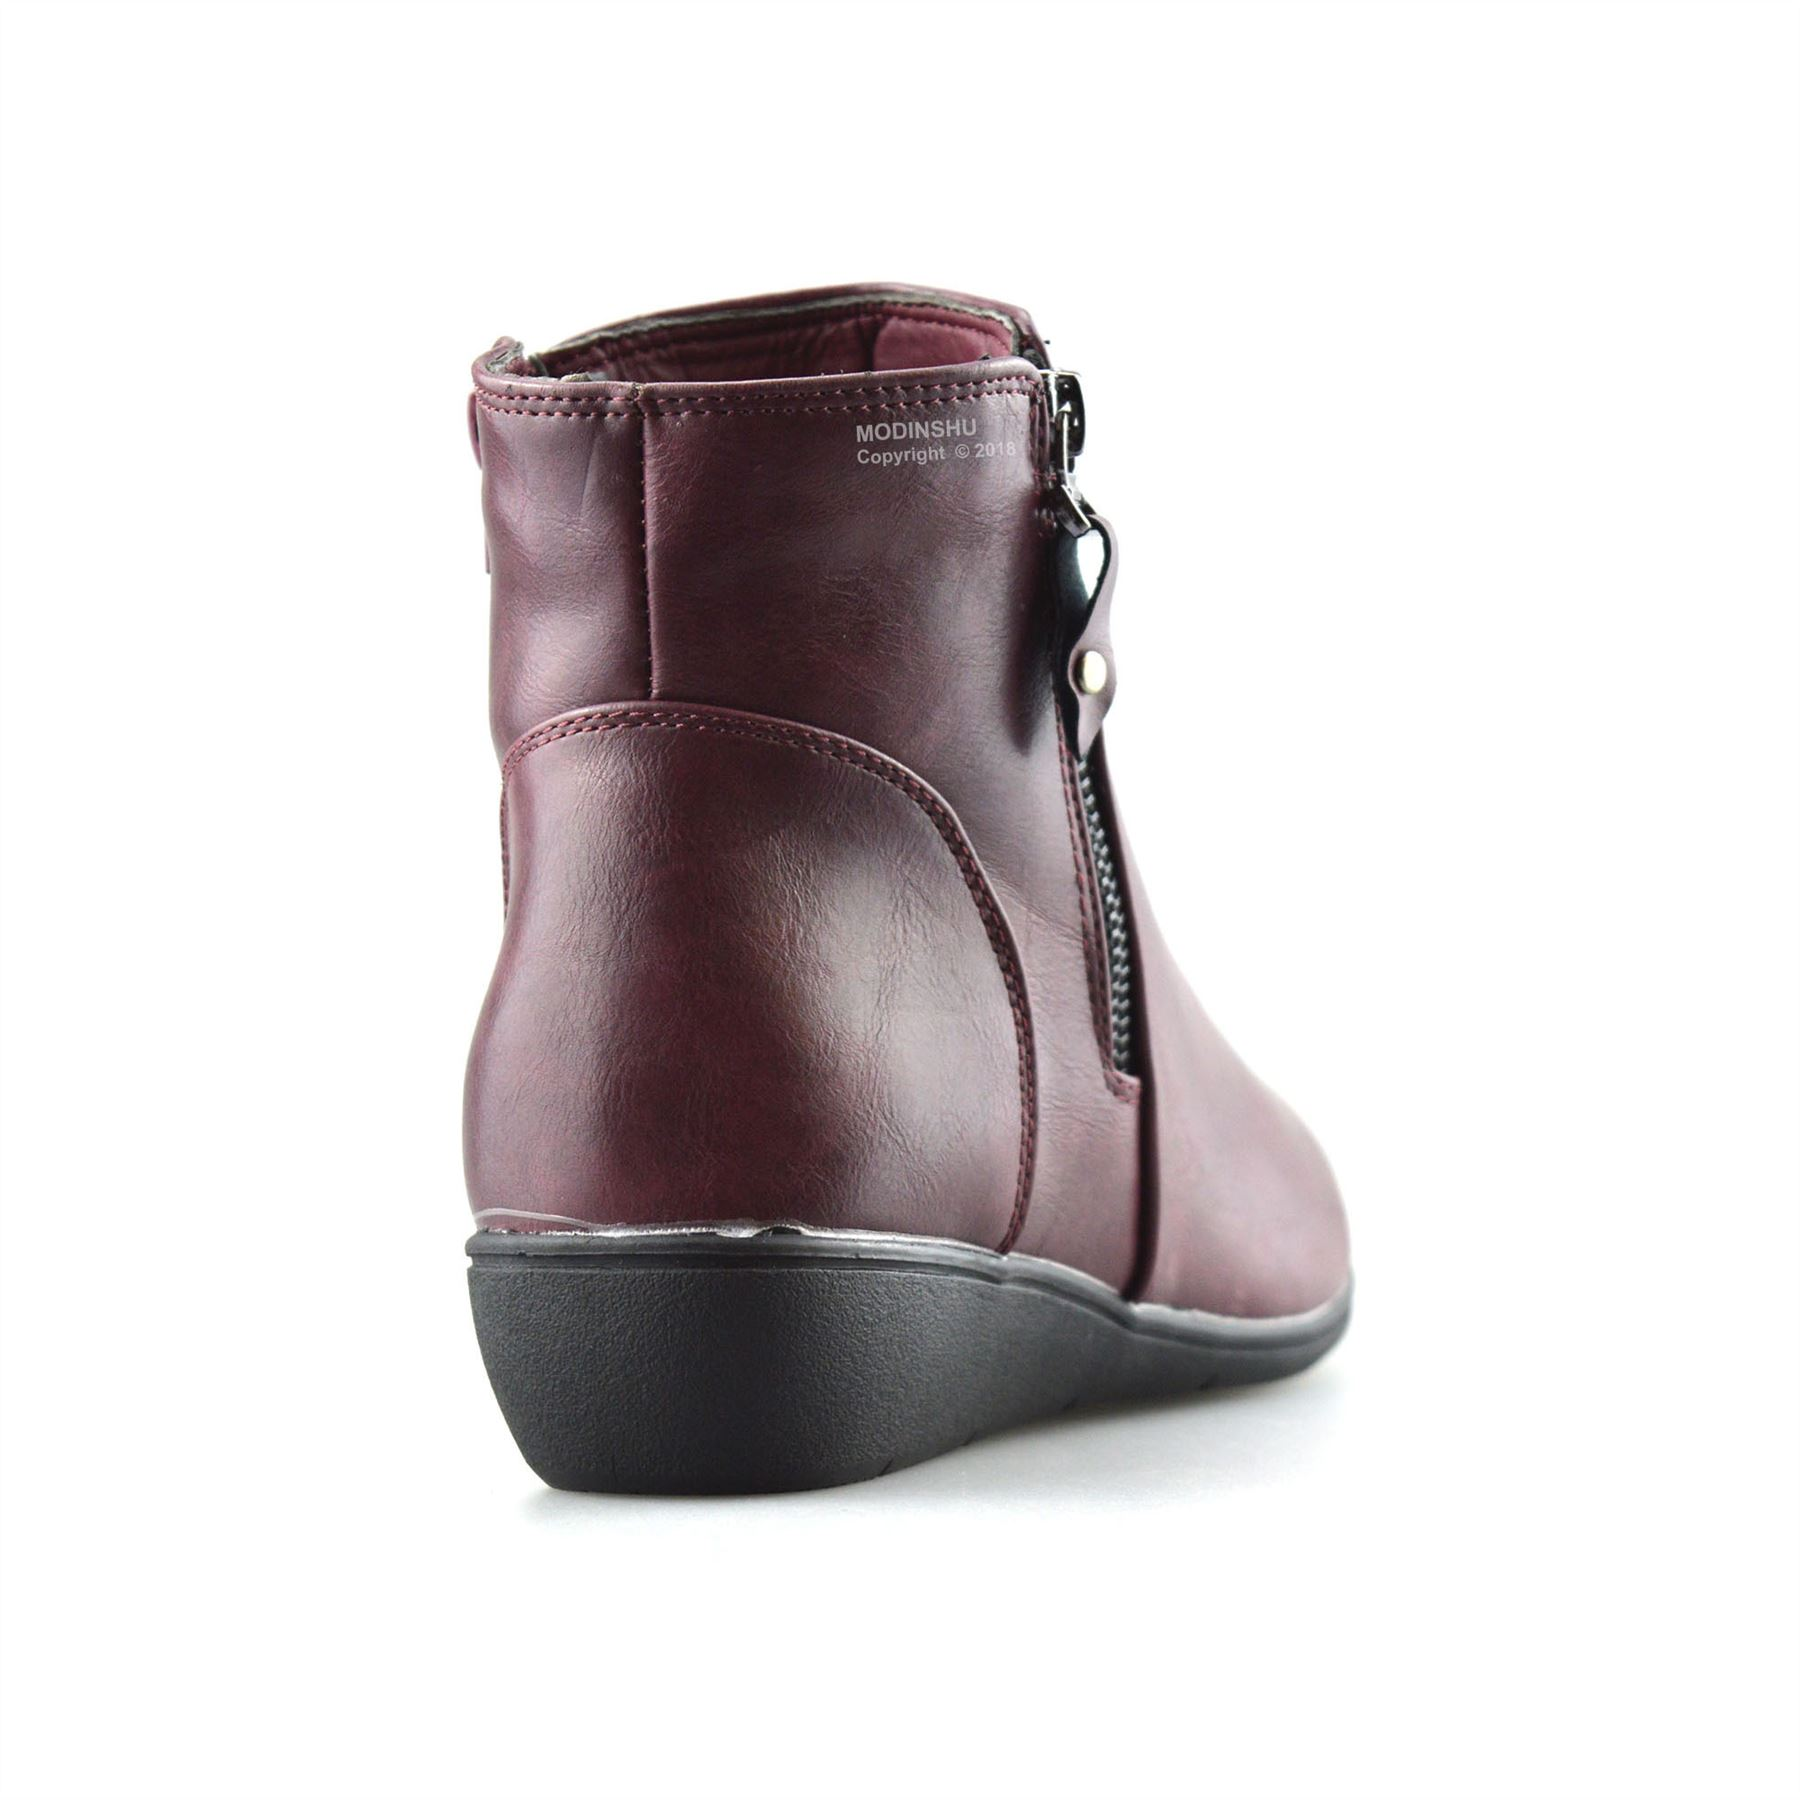 Ladies-Womens-Mid-Wedge-Heel-Warm-Fur-Lined-Zip-Up-Winter-Ankle-Boots-Shoes-Size